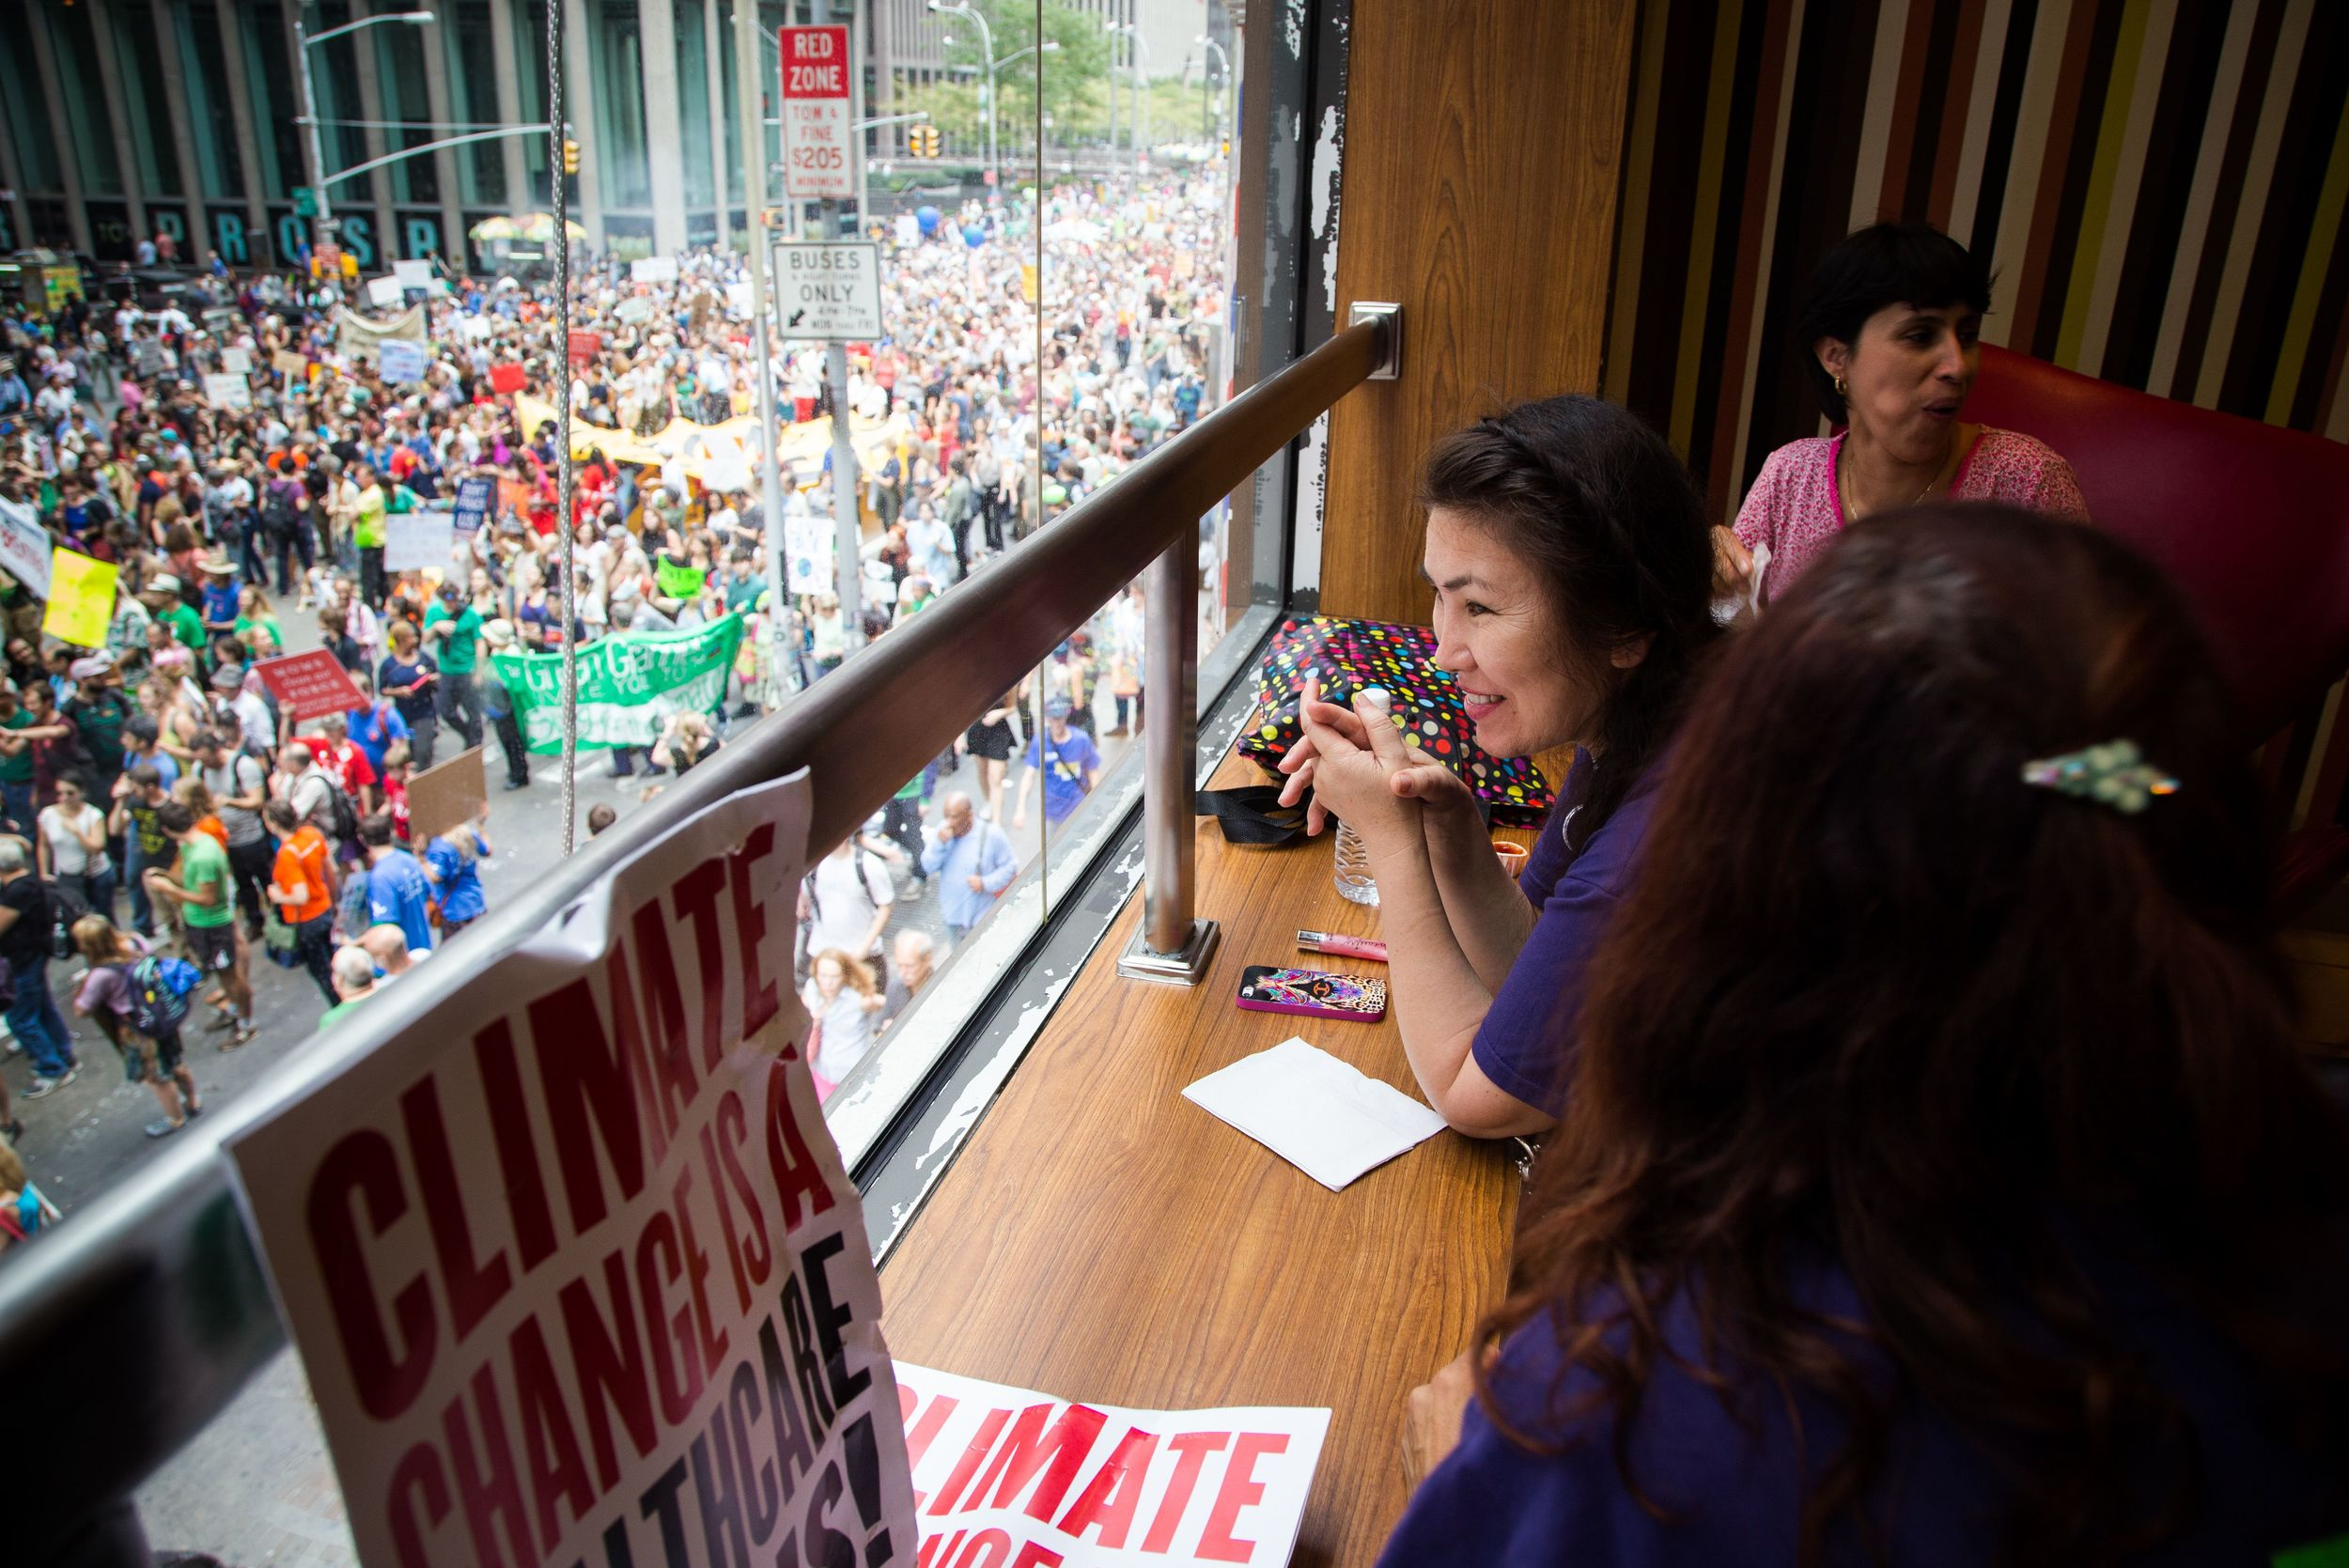 Elmira Muradova (M) and friends relaxing on the second floor of  McDonald's while watching the Climate Change march in New York City. By Ann Wang